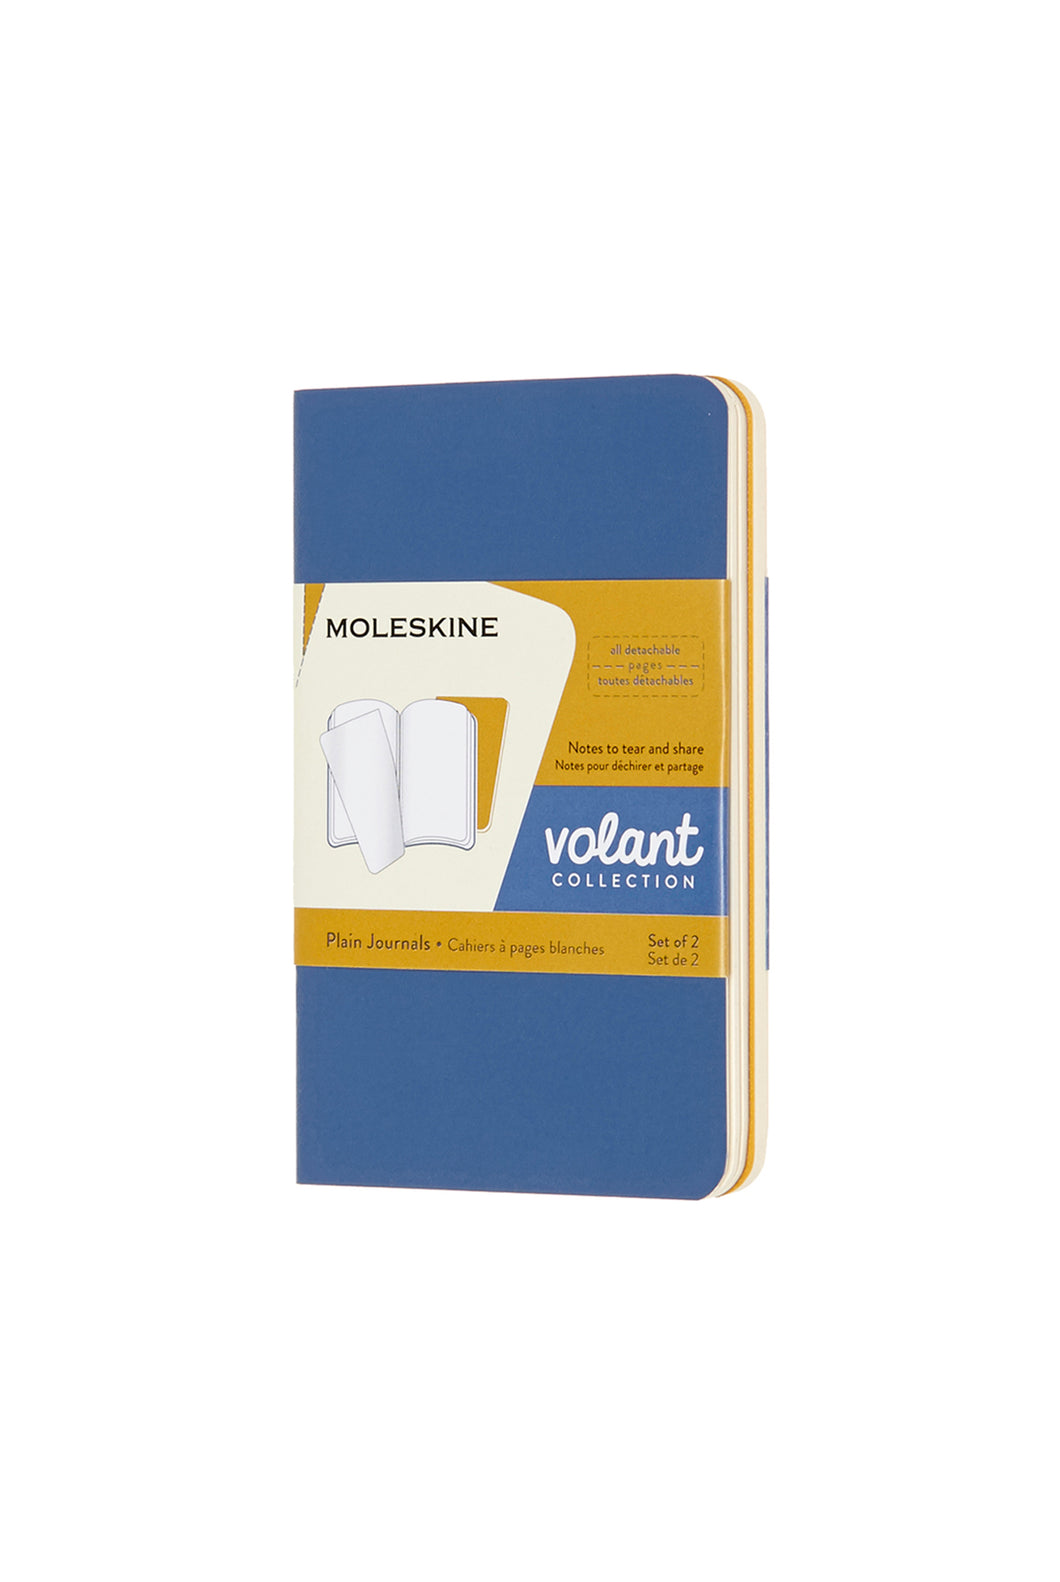 Moleskine - Volant Notebook - Plain - Extra Small (6.5x10cm) - Forget Me Not Blue & Amber Yellow